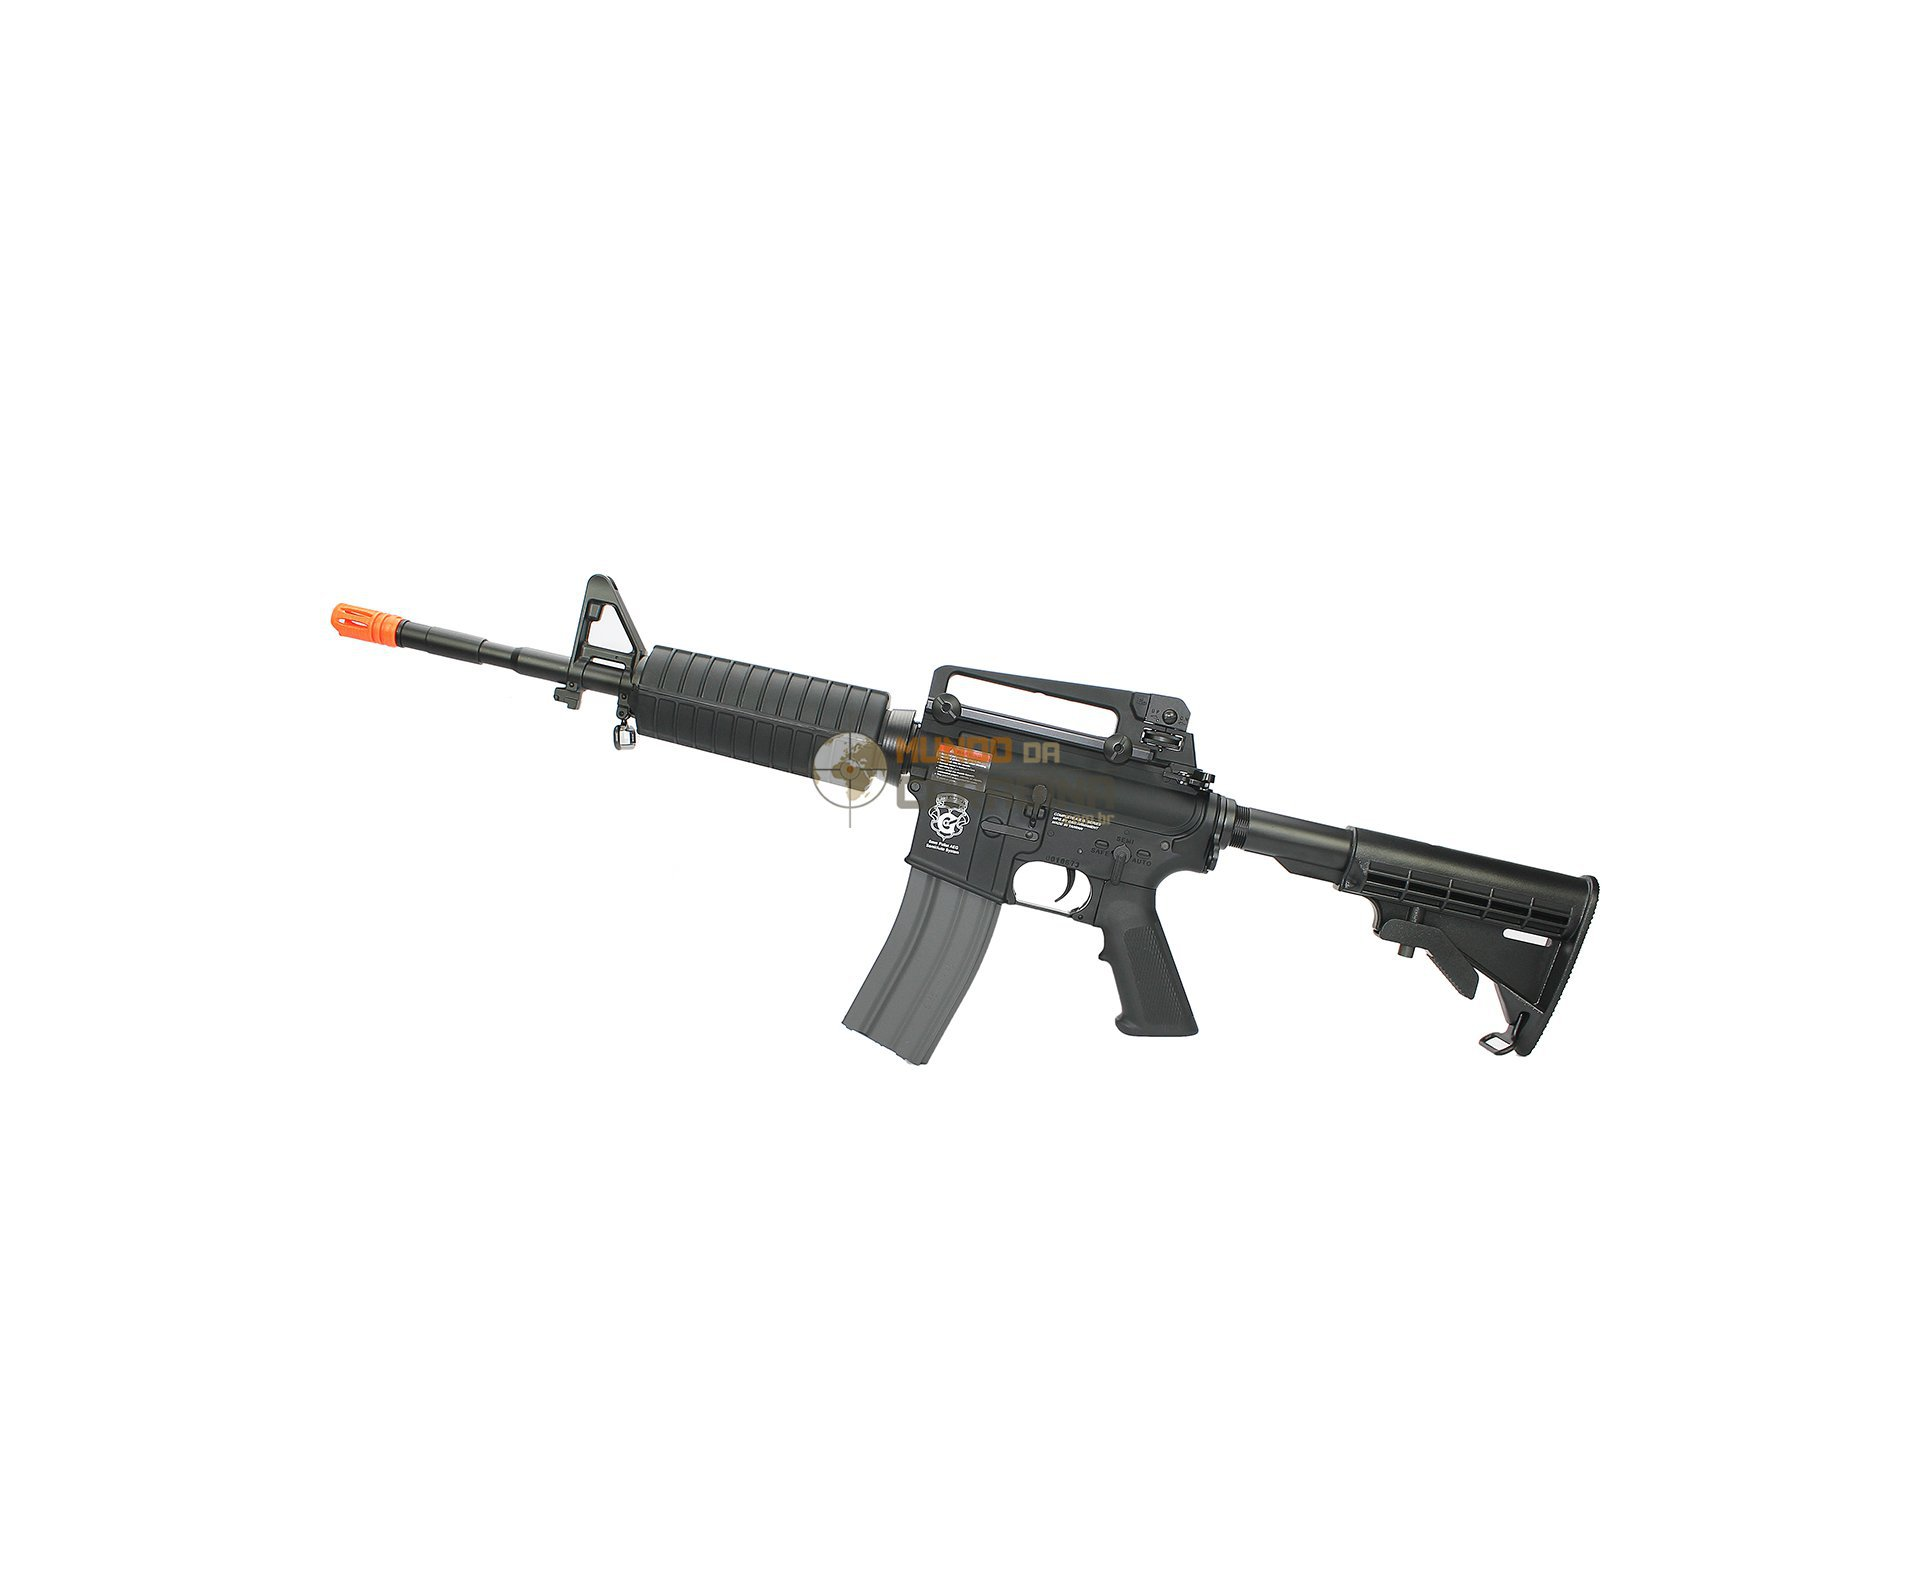 Rifle De Airsoft M4a1 Gr16 Blow Back Cal 6 Mm - G&g